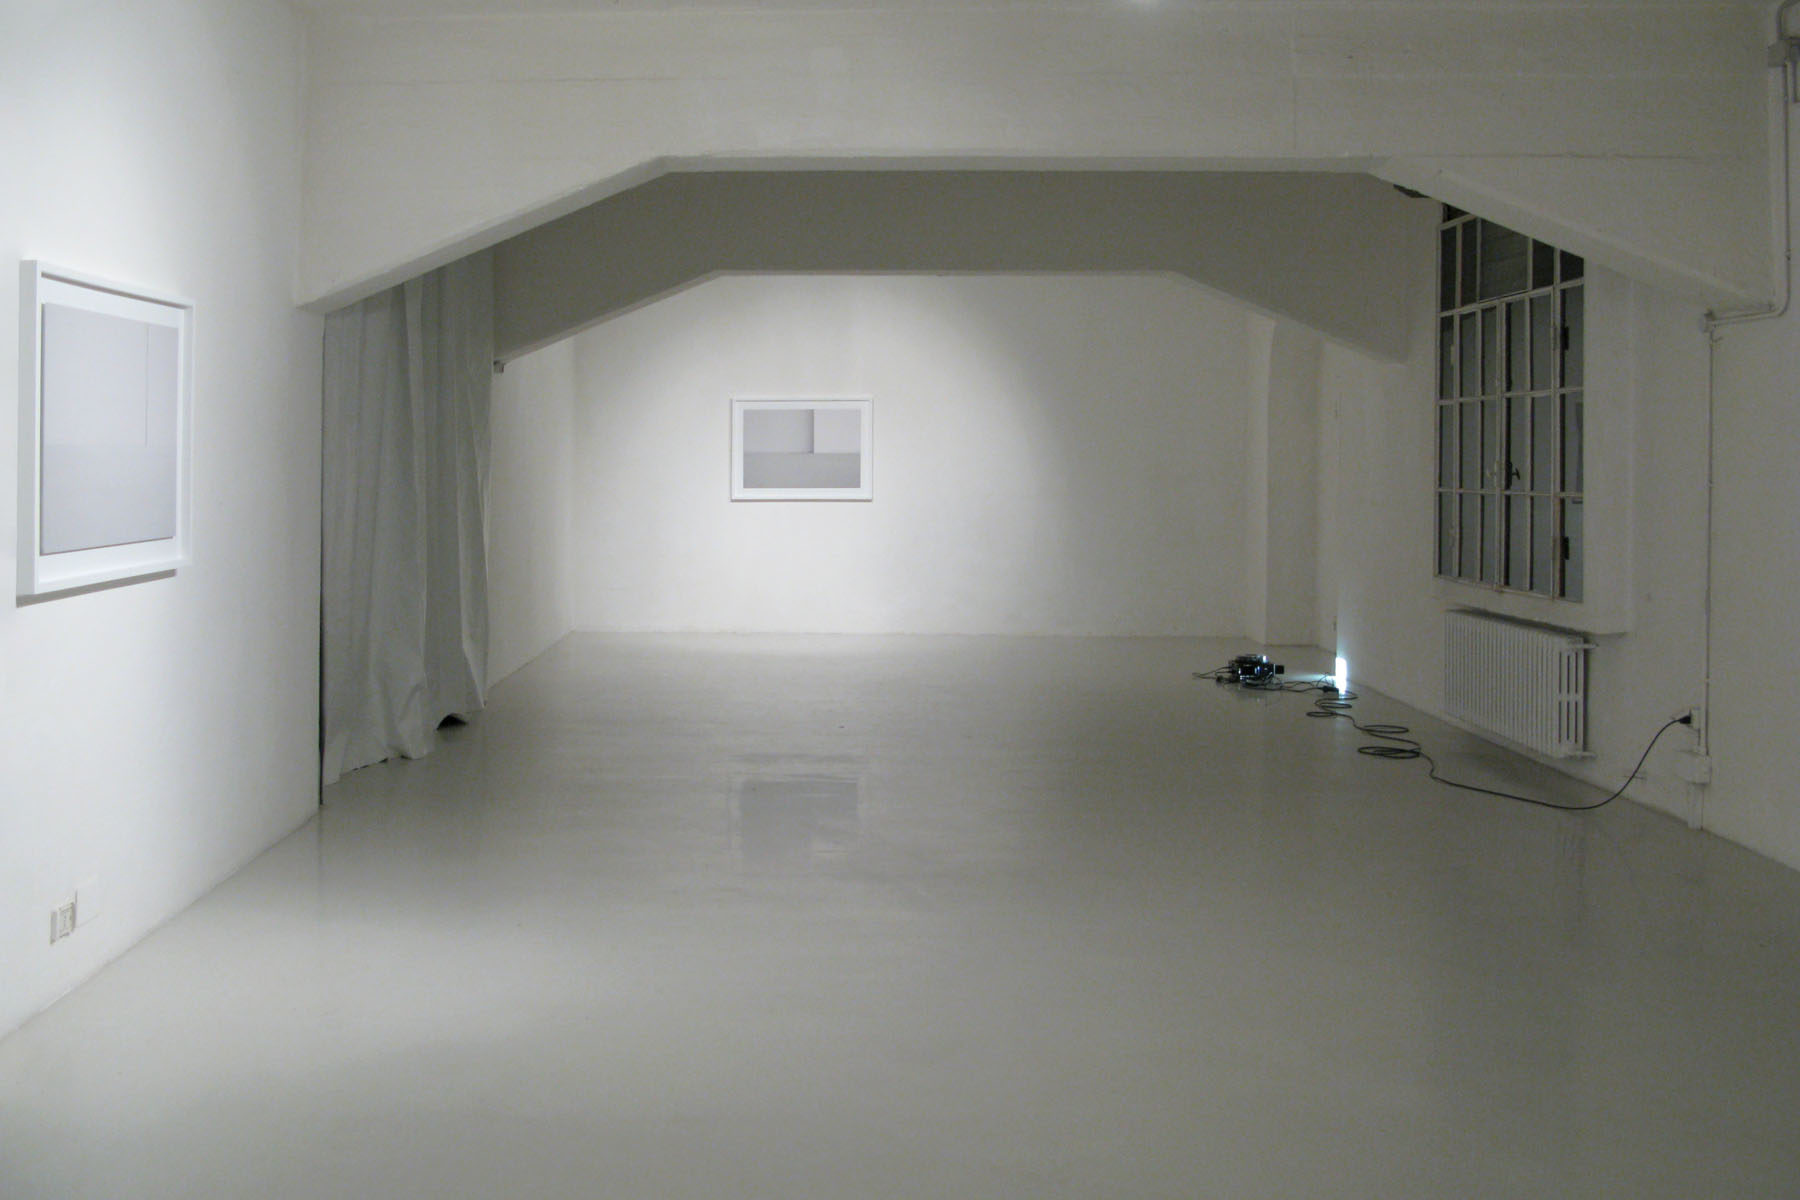 M. Spanghero, Exhibition Rooms, show view